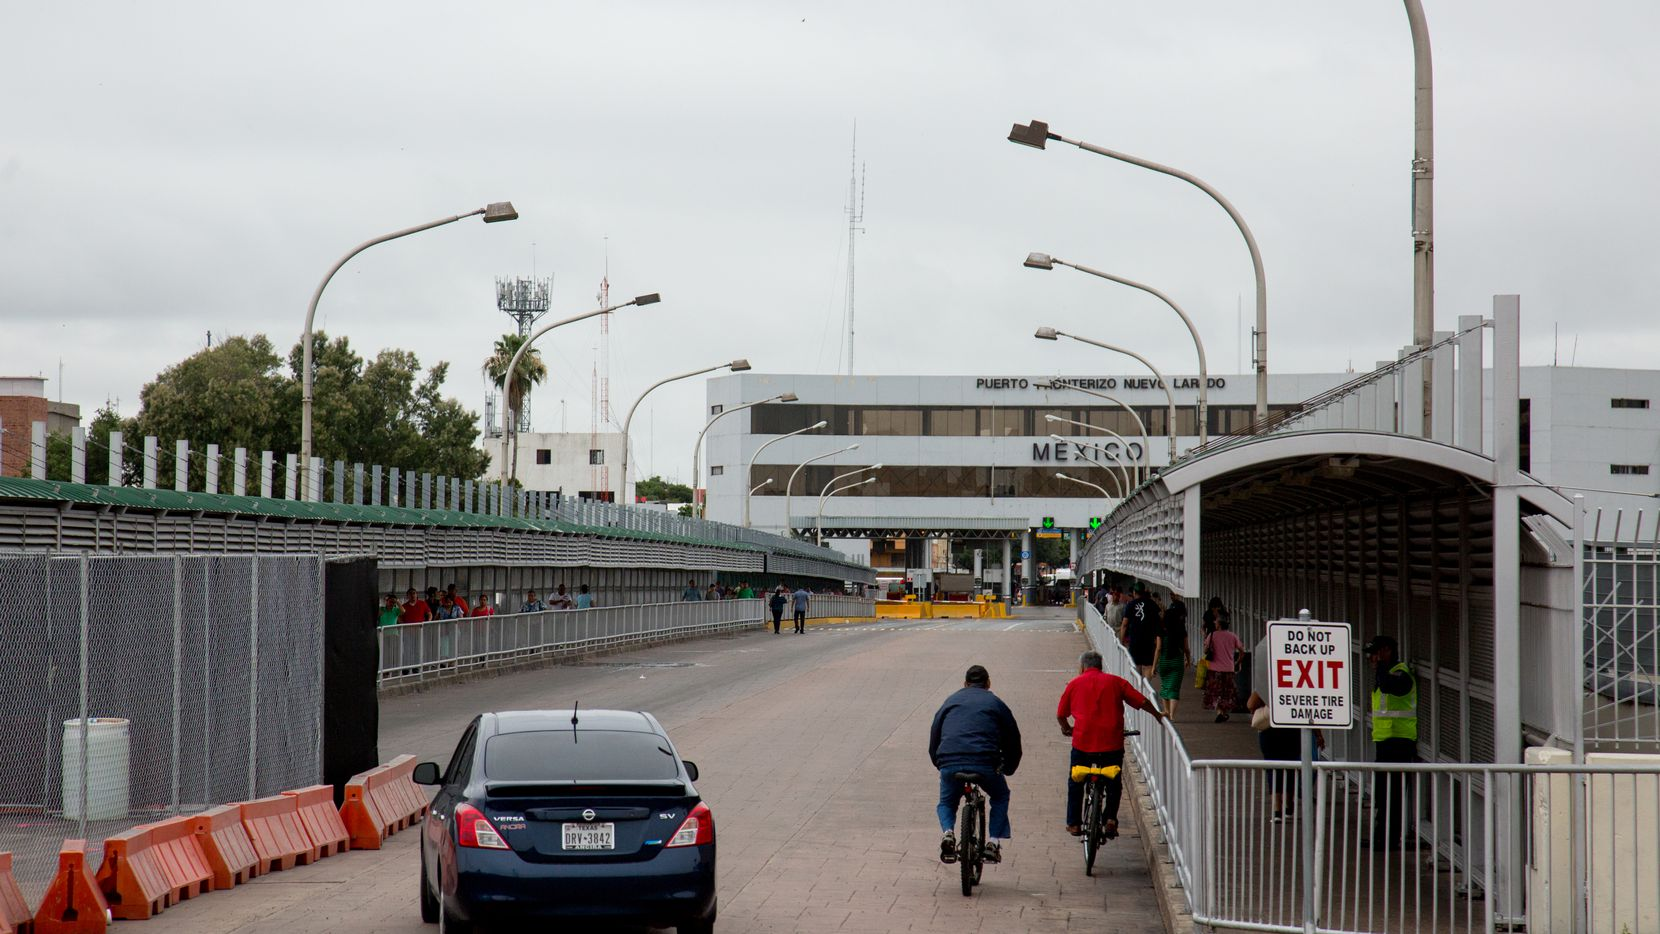 Roughly 50 people, including an Irving man, have gone missing this year while traveling between Monterrey and the border city of Nuevo Laredo.